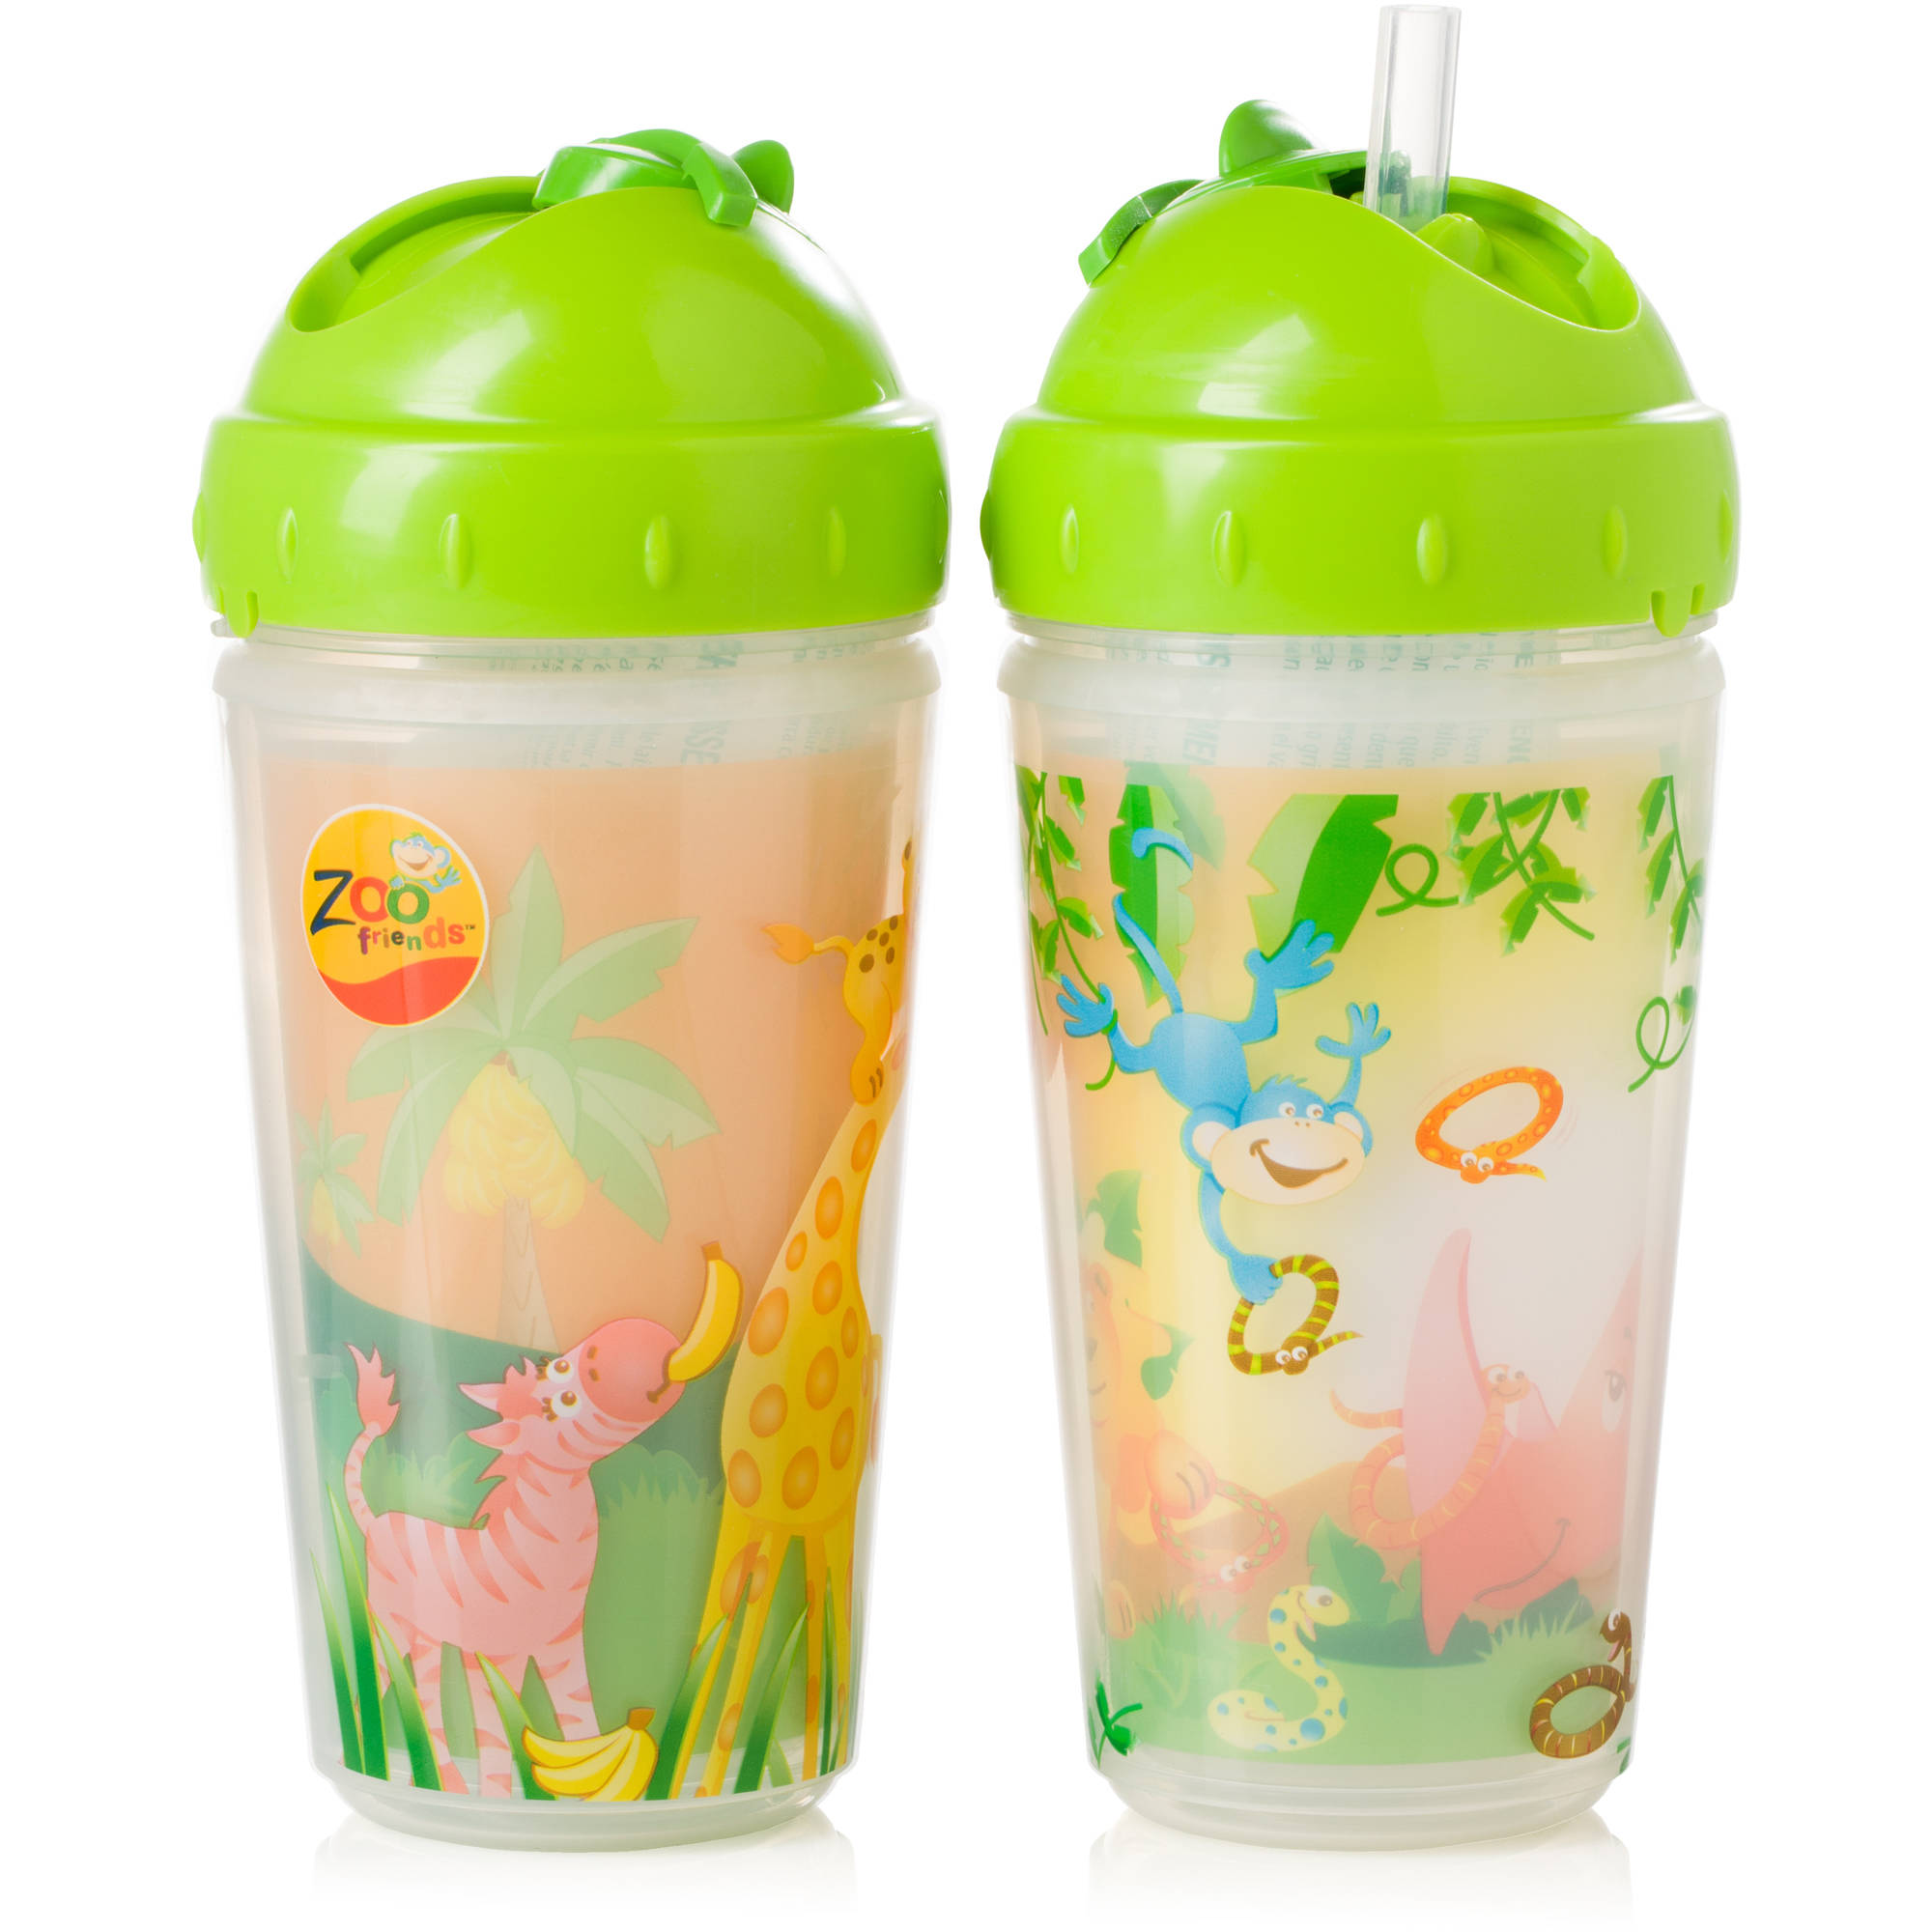 Evenflo Zoo Friends Insulated Straw Cup, 2-Pack, Boy, BPA-Free